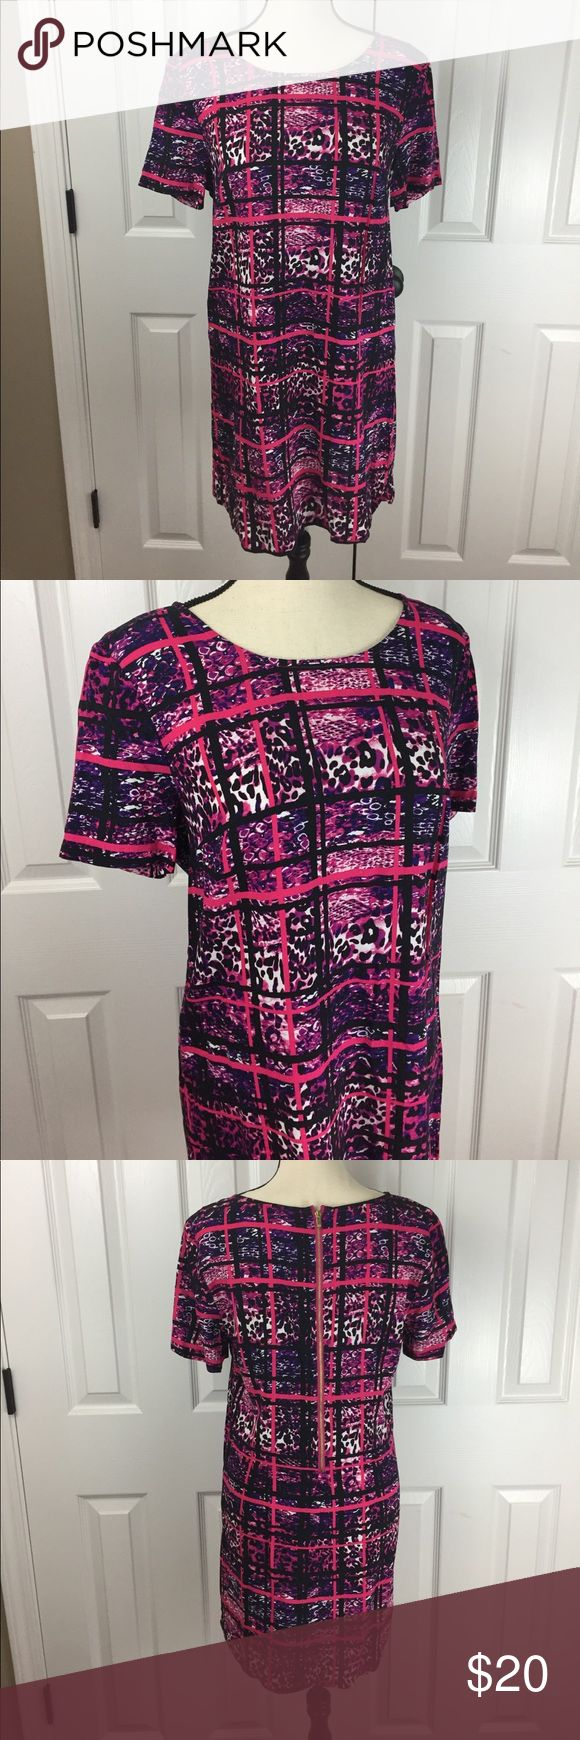 Women's Ámbar Pink and Purple Comfy Sheath Dress Brand New without tags. Women's Ambar brand Pink and Purple short sleeve Sheath Dress size medium. 100% Rayon. Beautiful dress. Pet free and smoke free home. Please check out my other listings! Thanks! Dresses